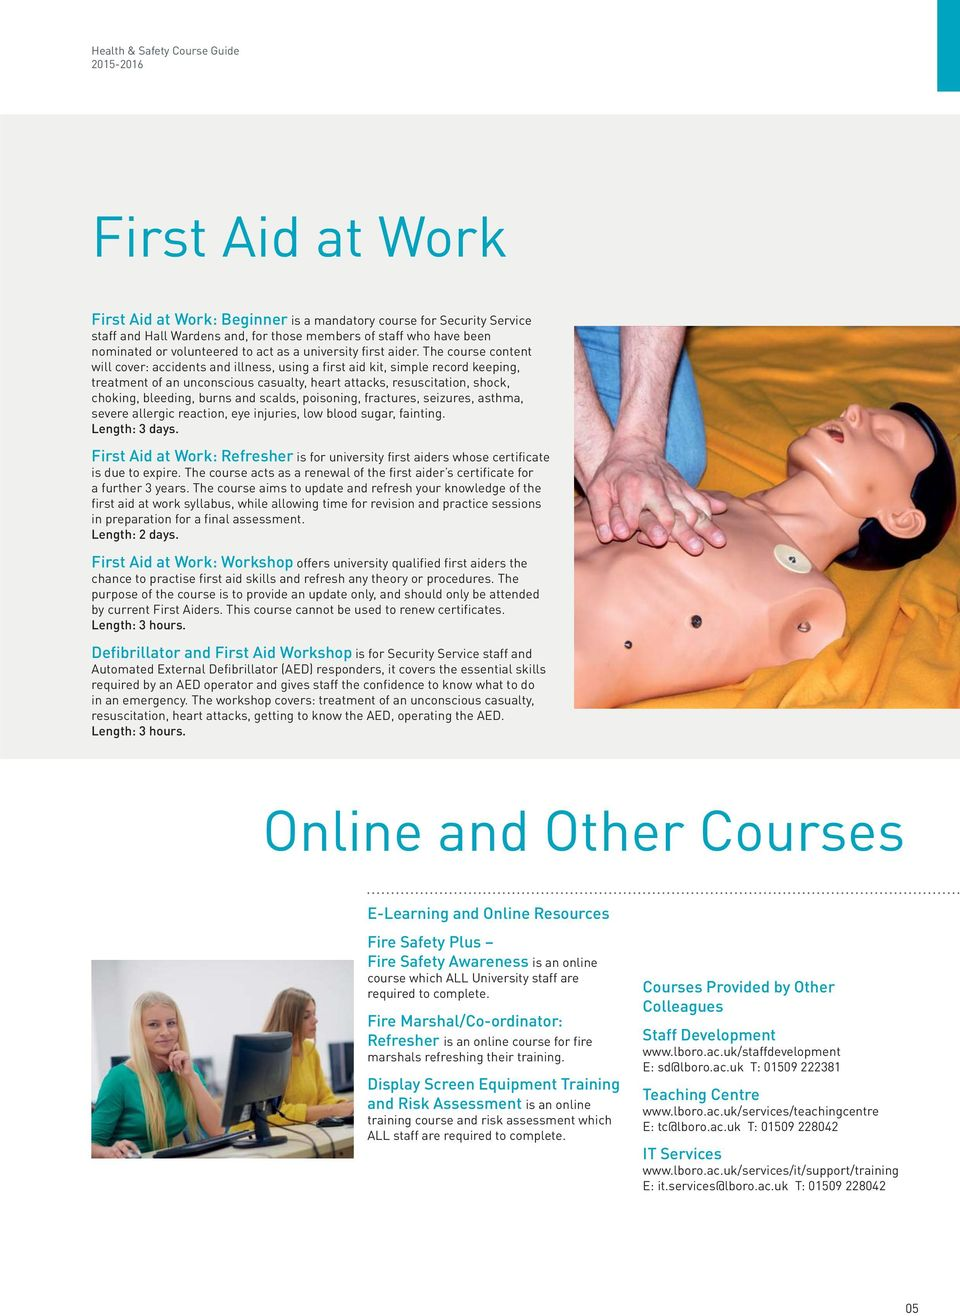 The course content will cover: accidents and illness, using a first aid kit, simple record keeping, treatment of an unconscious casualty, heart attacks, resuscitation, shock, choking, bleeding, burns